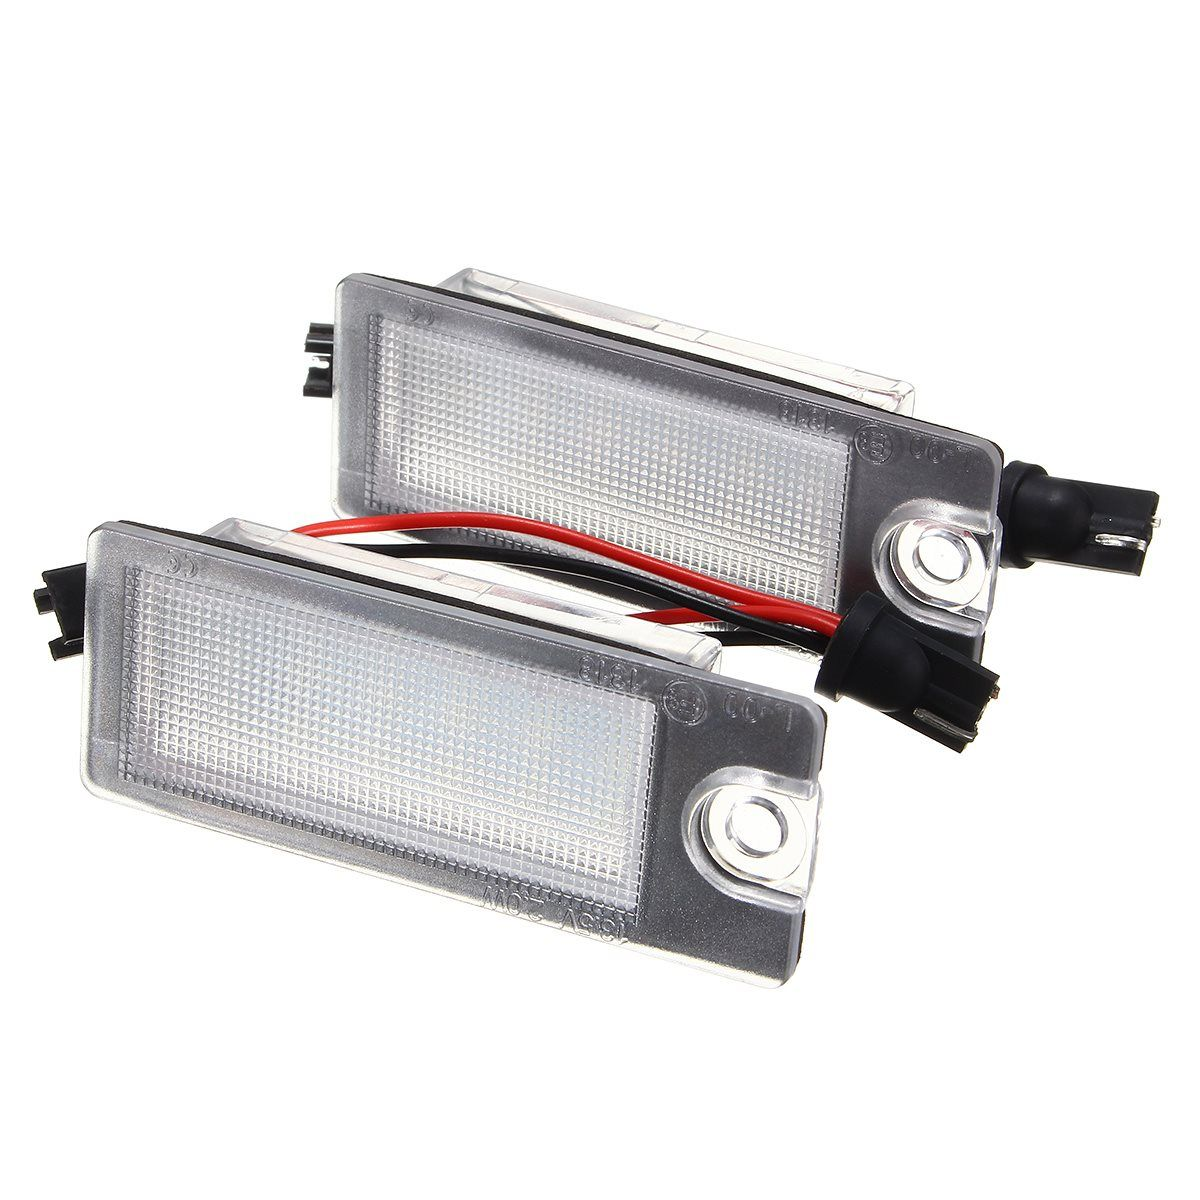 2pcs car 18 led license plate light white number plate lamp for 2pcs car 18 led license plate light white number plate lamp for volvo s80 99 fandeluxe Image collections